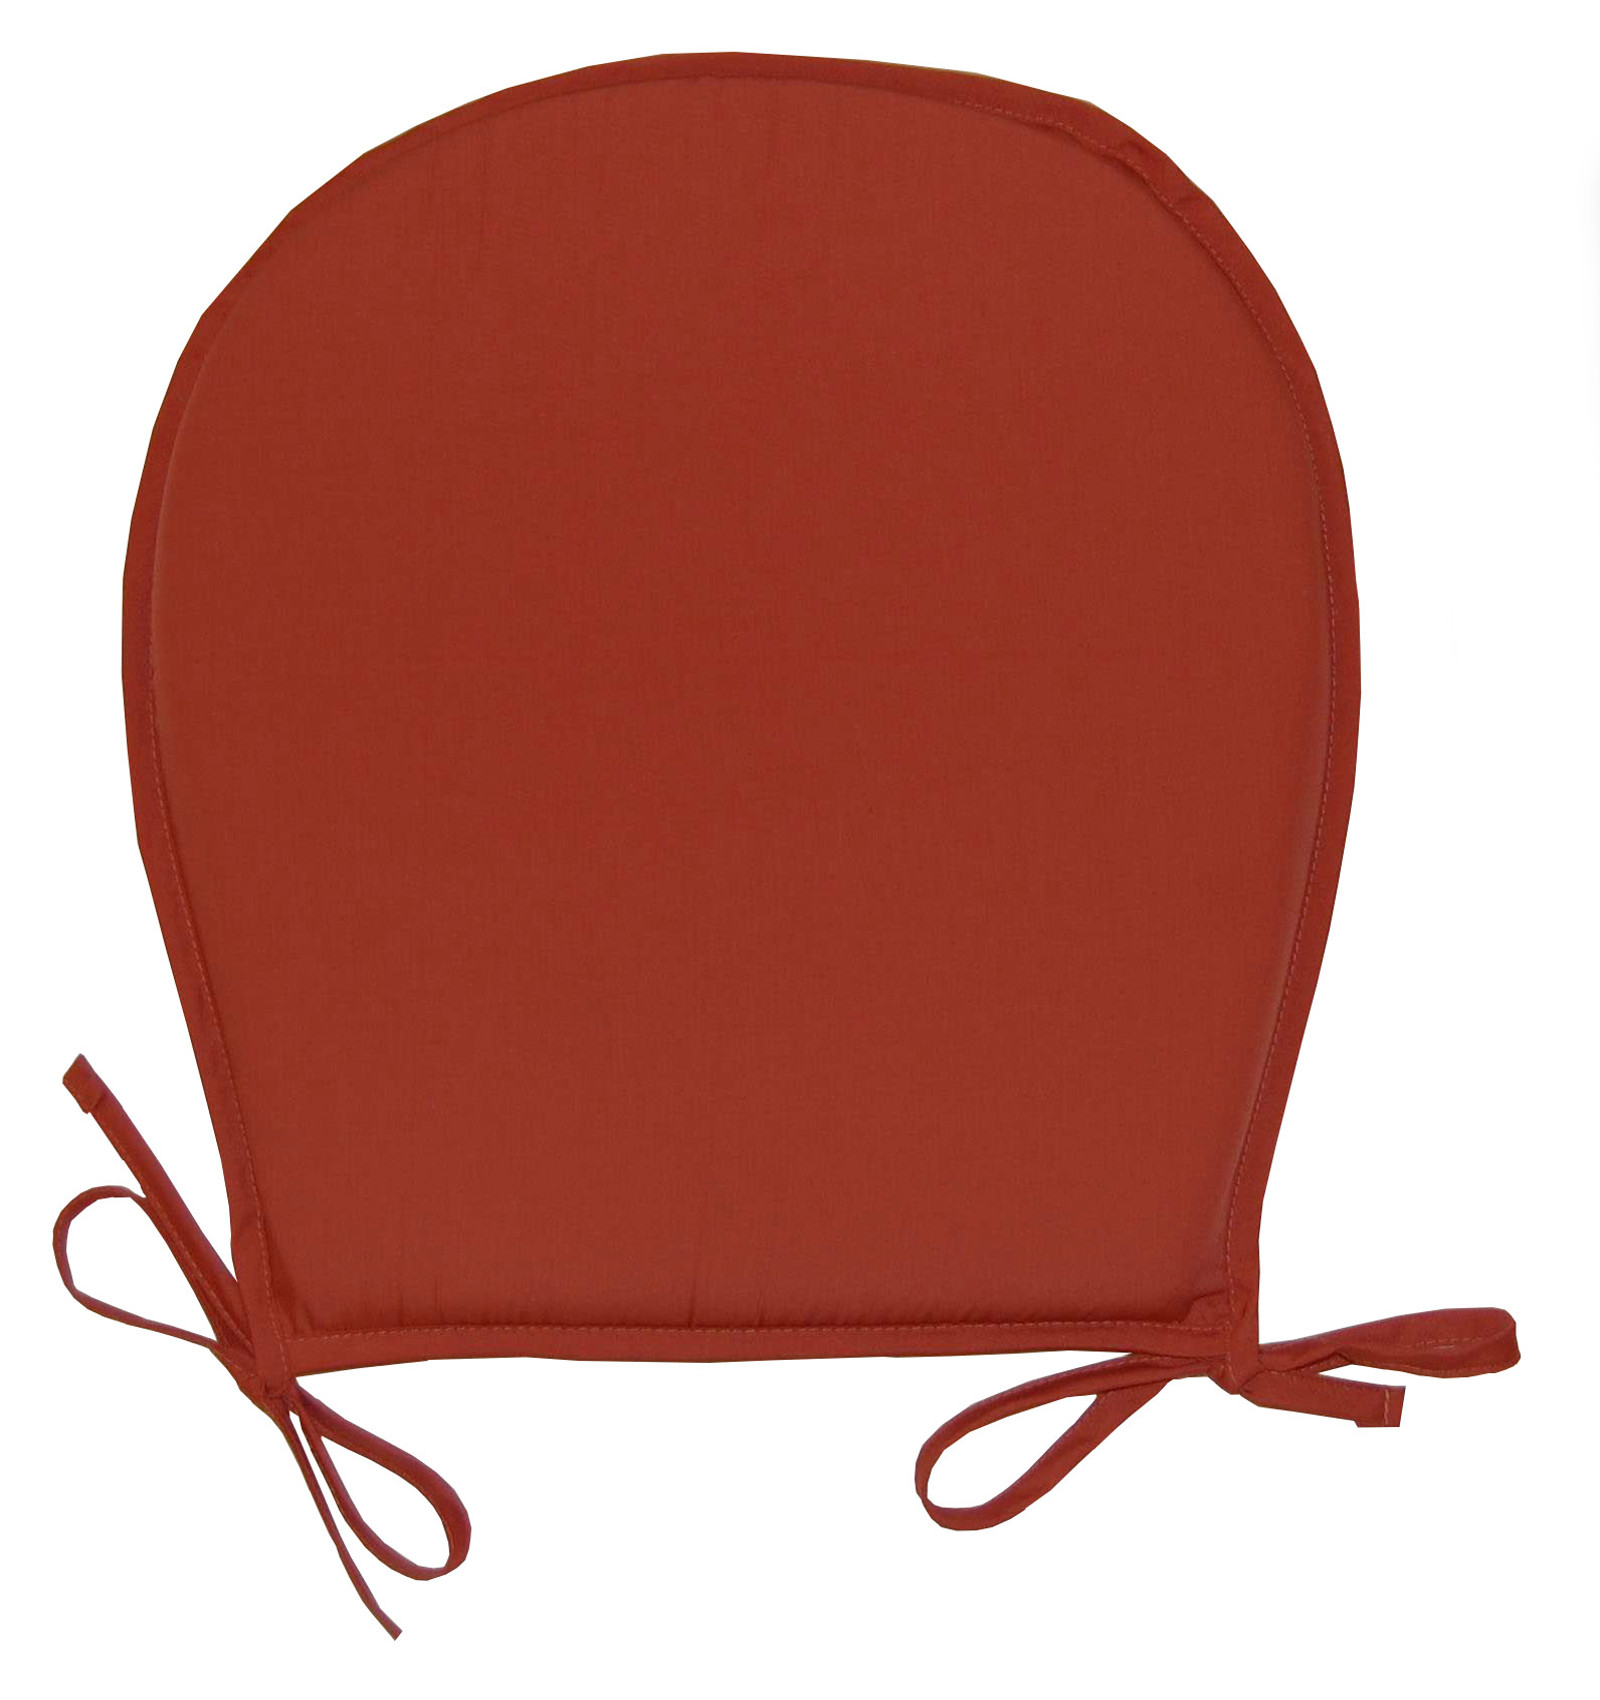 Plain Round Seat Pad Outdoor Garden Dining Kitchen Chair Furniture Cushion 37cm